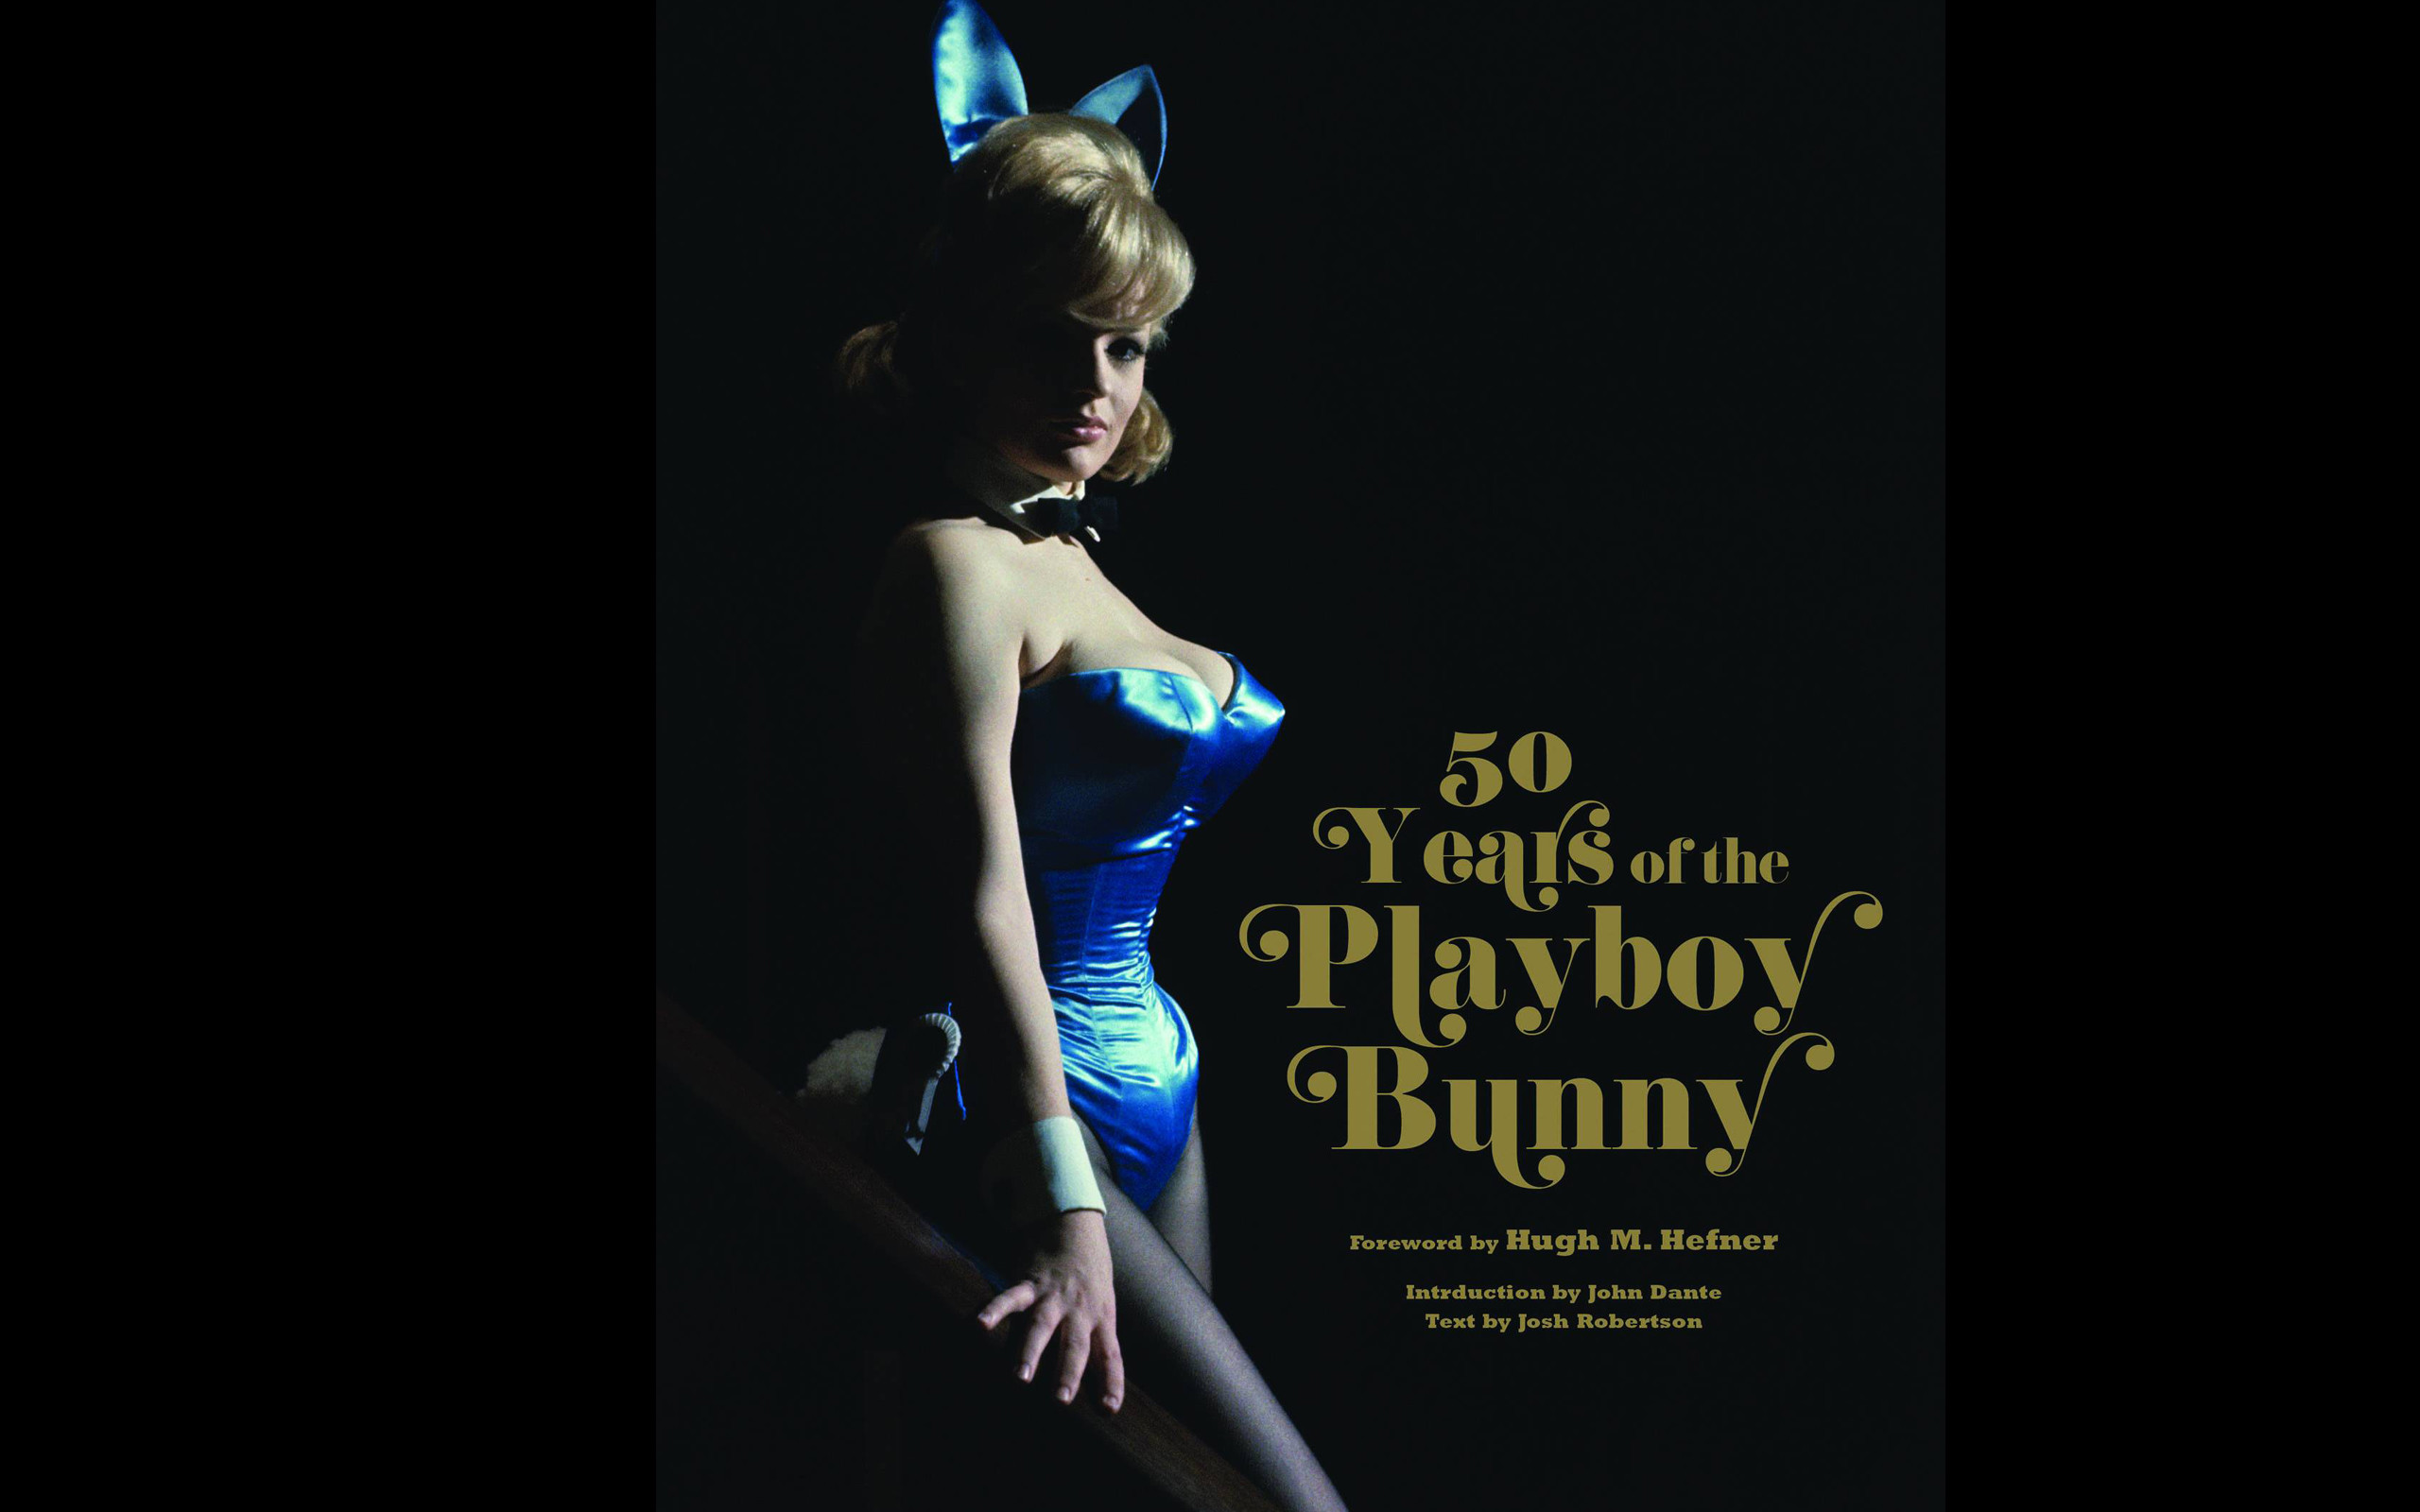 Playboy Bunny Wallpapers 72 images